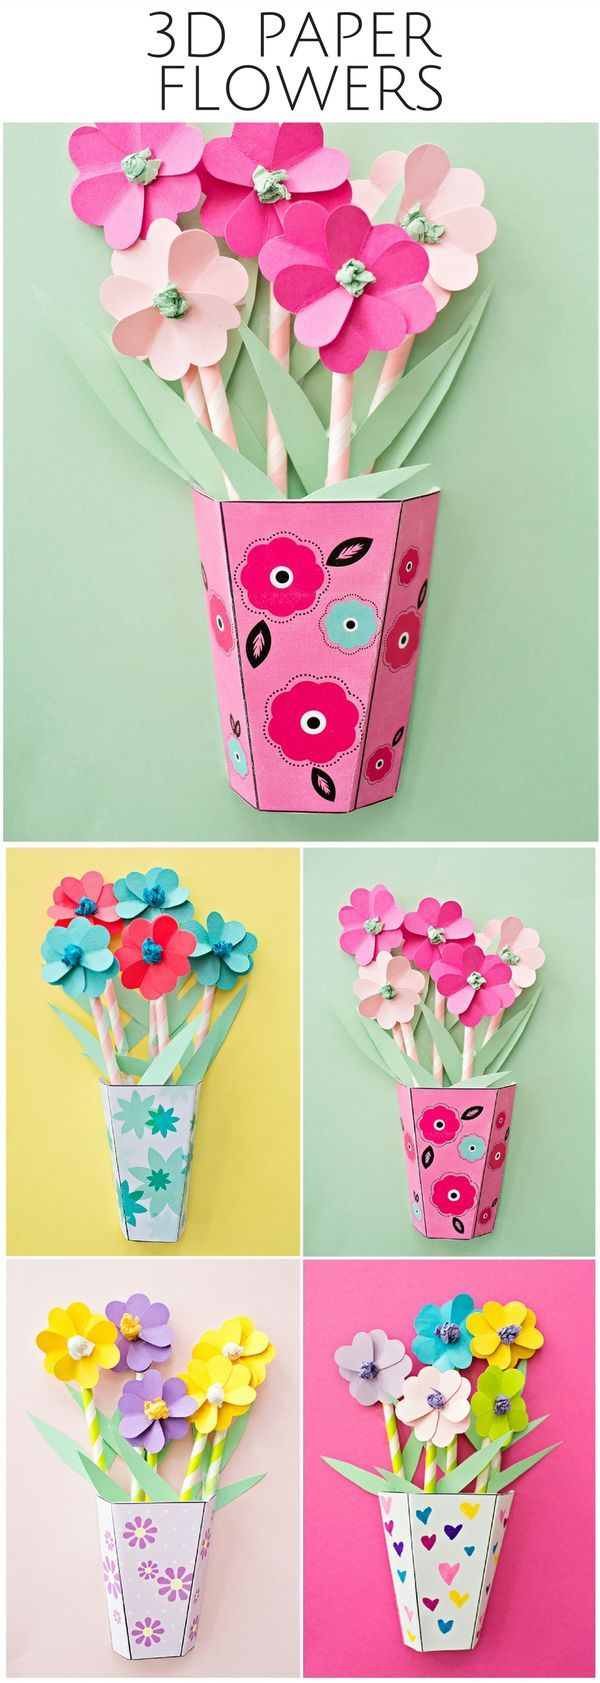 How To Make 3d Paper Flower Bouquets With Video Pinterest 3d